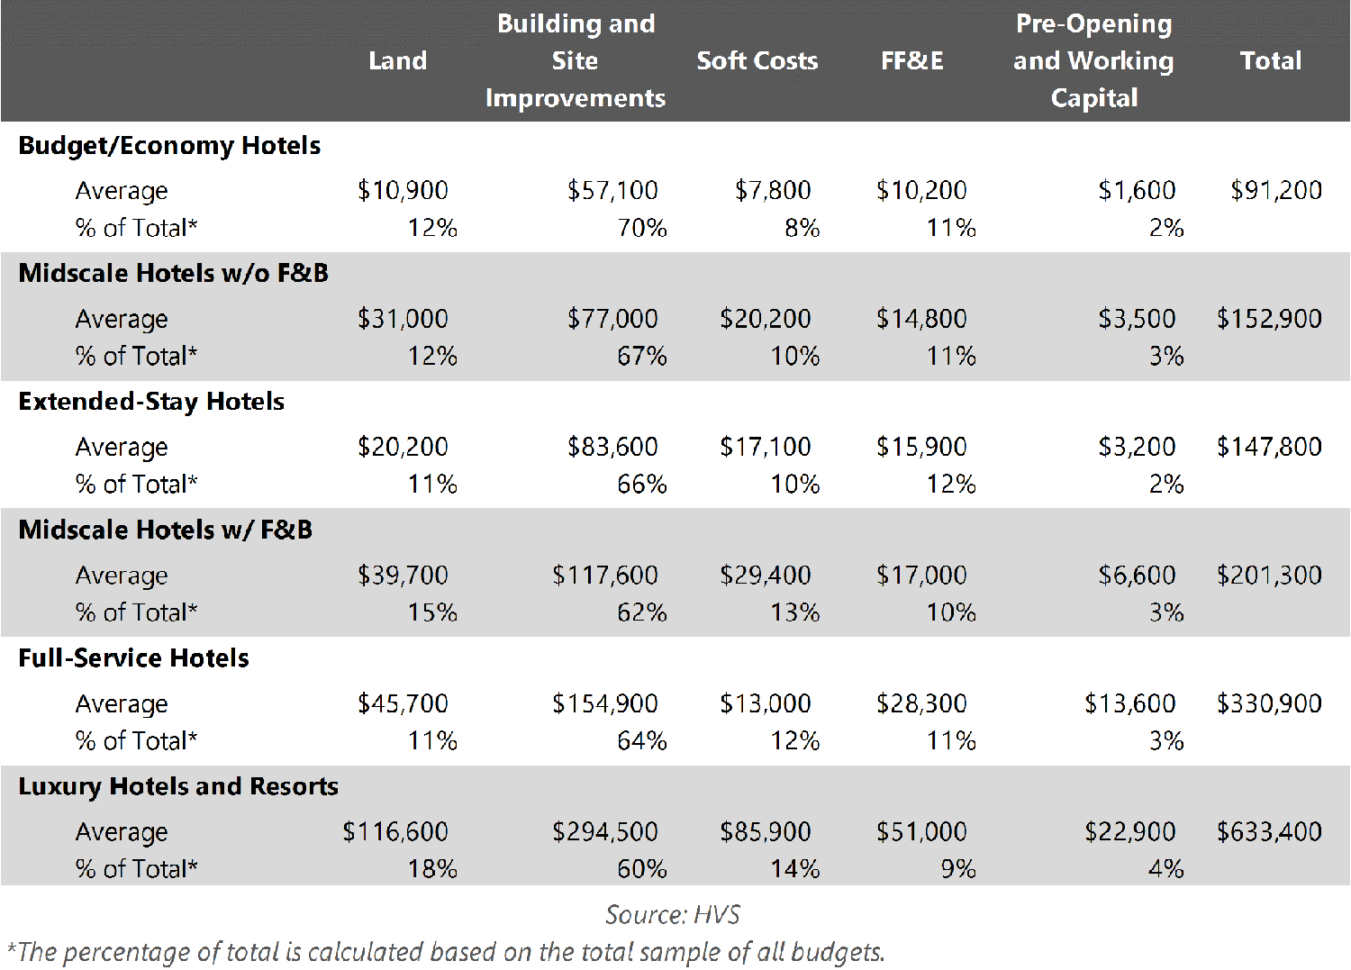 Land Development Cost Spreadsheet Throughout Hvs  U.s. Hotel Development Cost Survey 2015/16